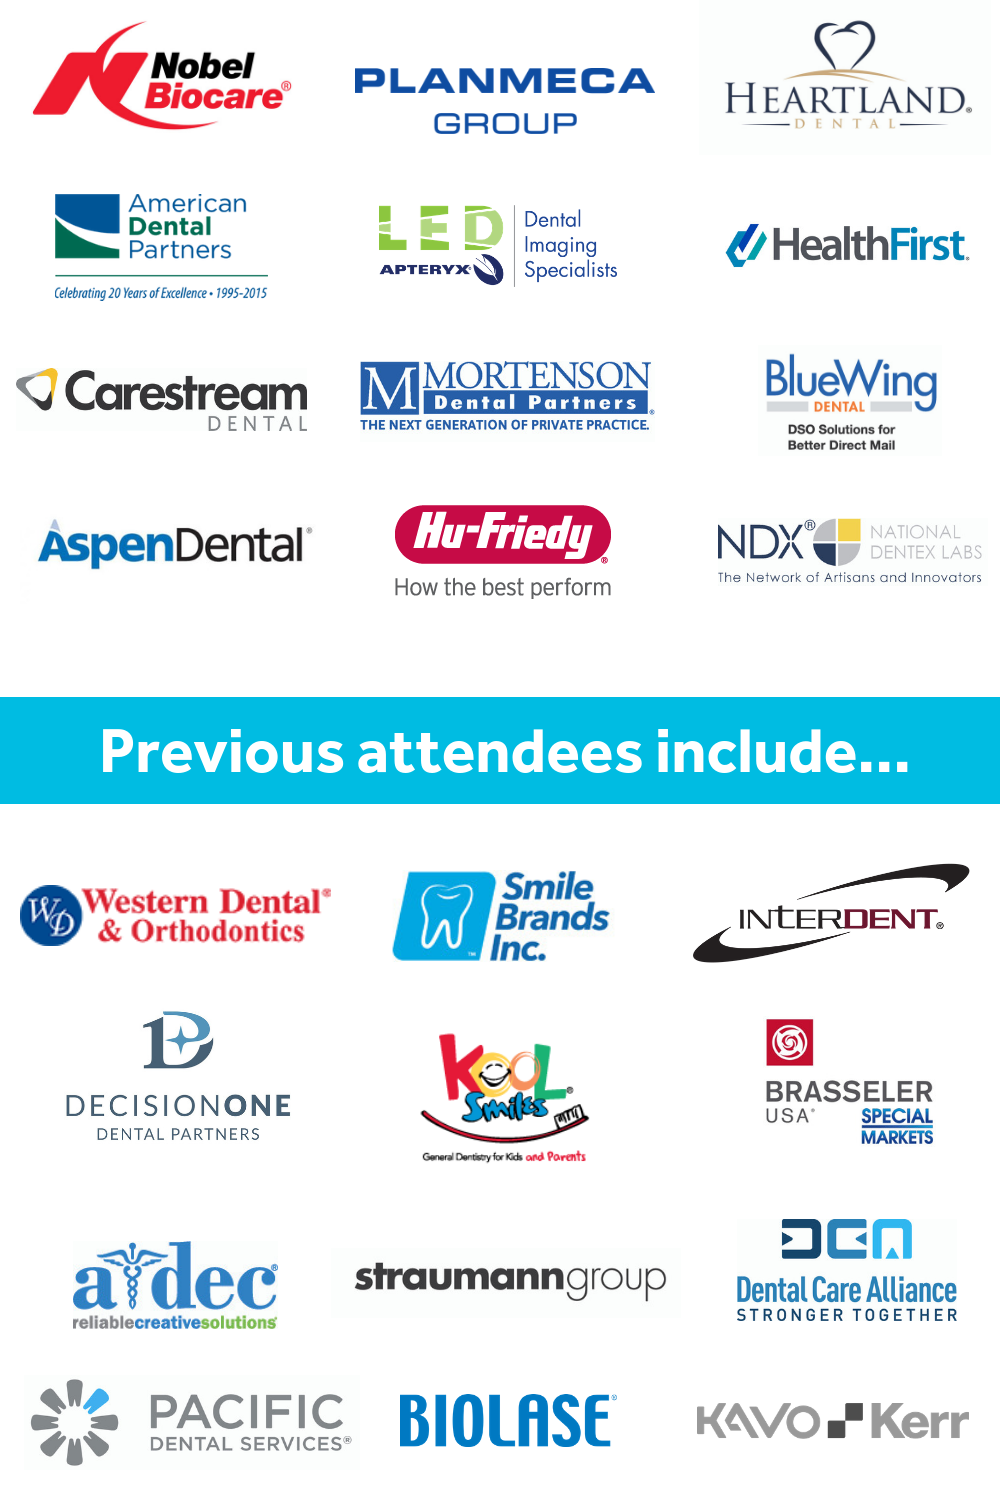 DSO, Aspen, Heartland, Event, Dentistry, dental, Dental Care Alliance, Pacific Dental, Western Dental, Great Expressions